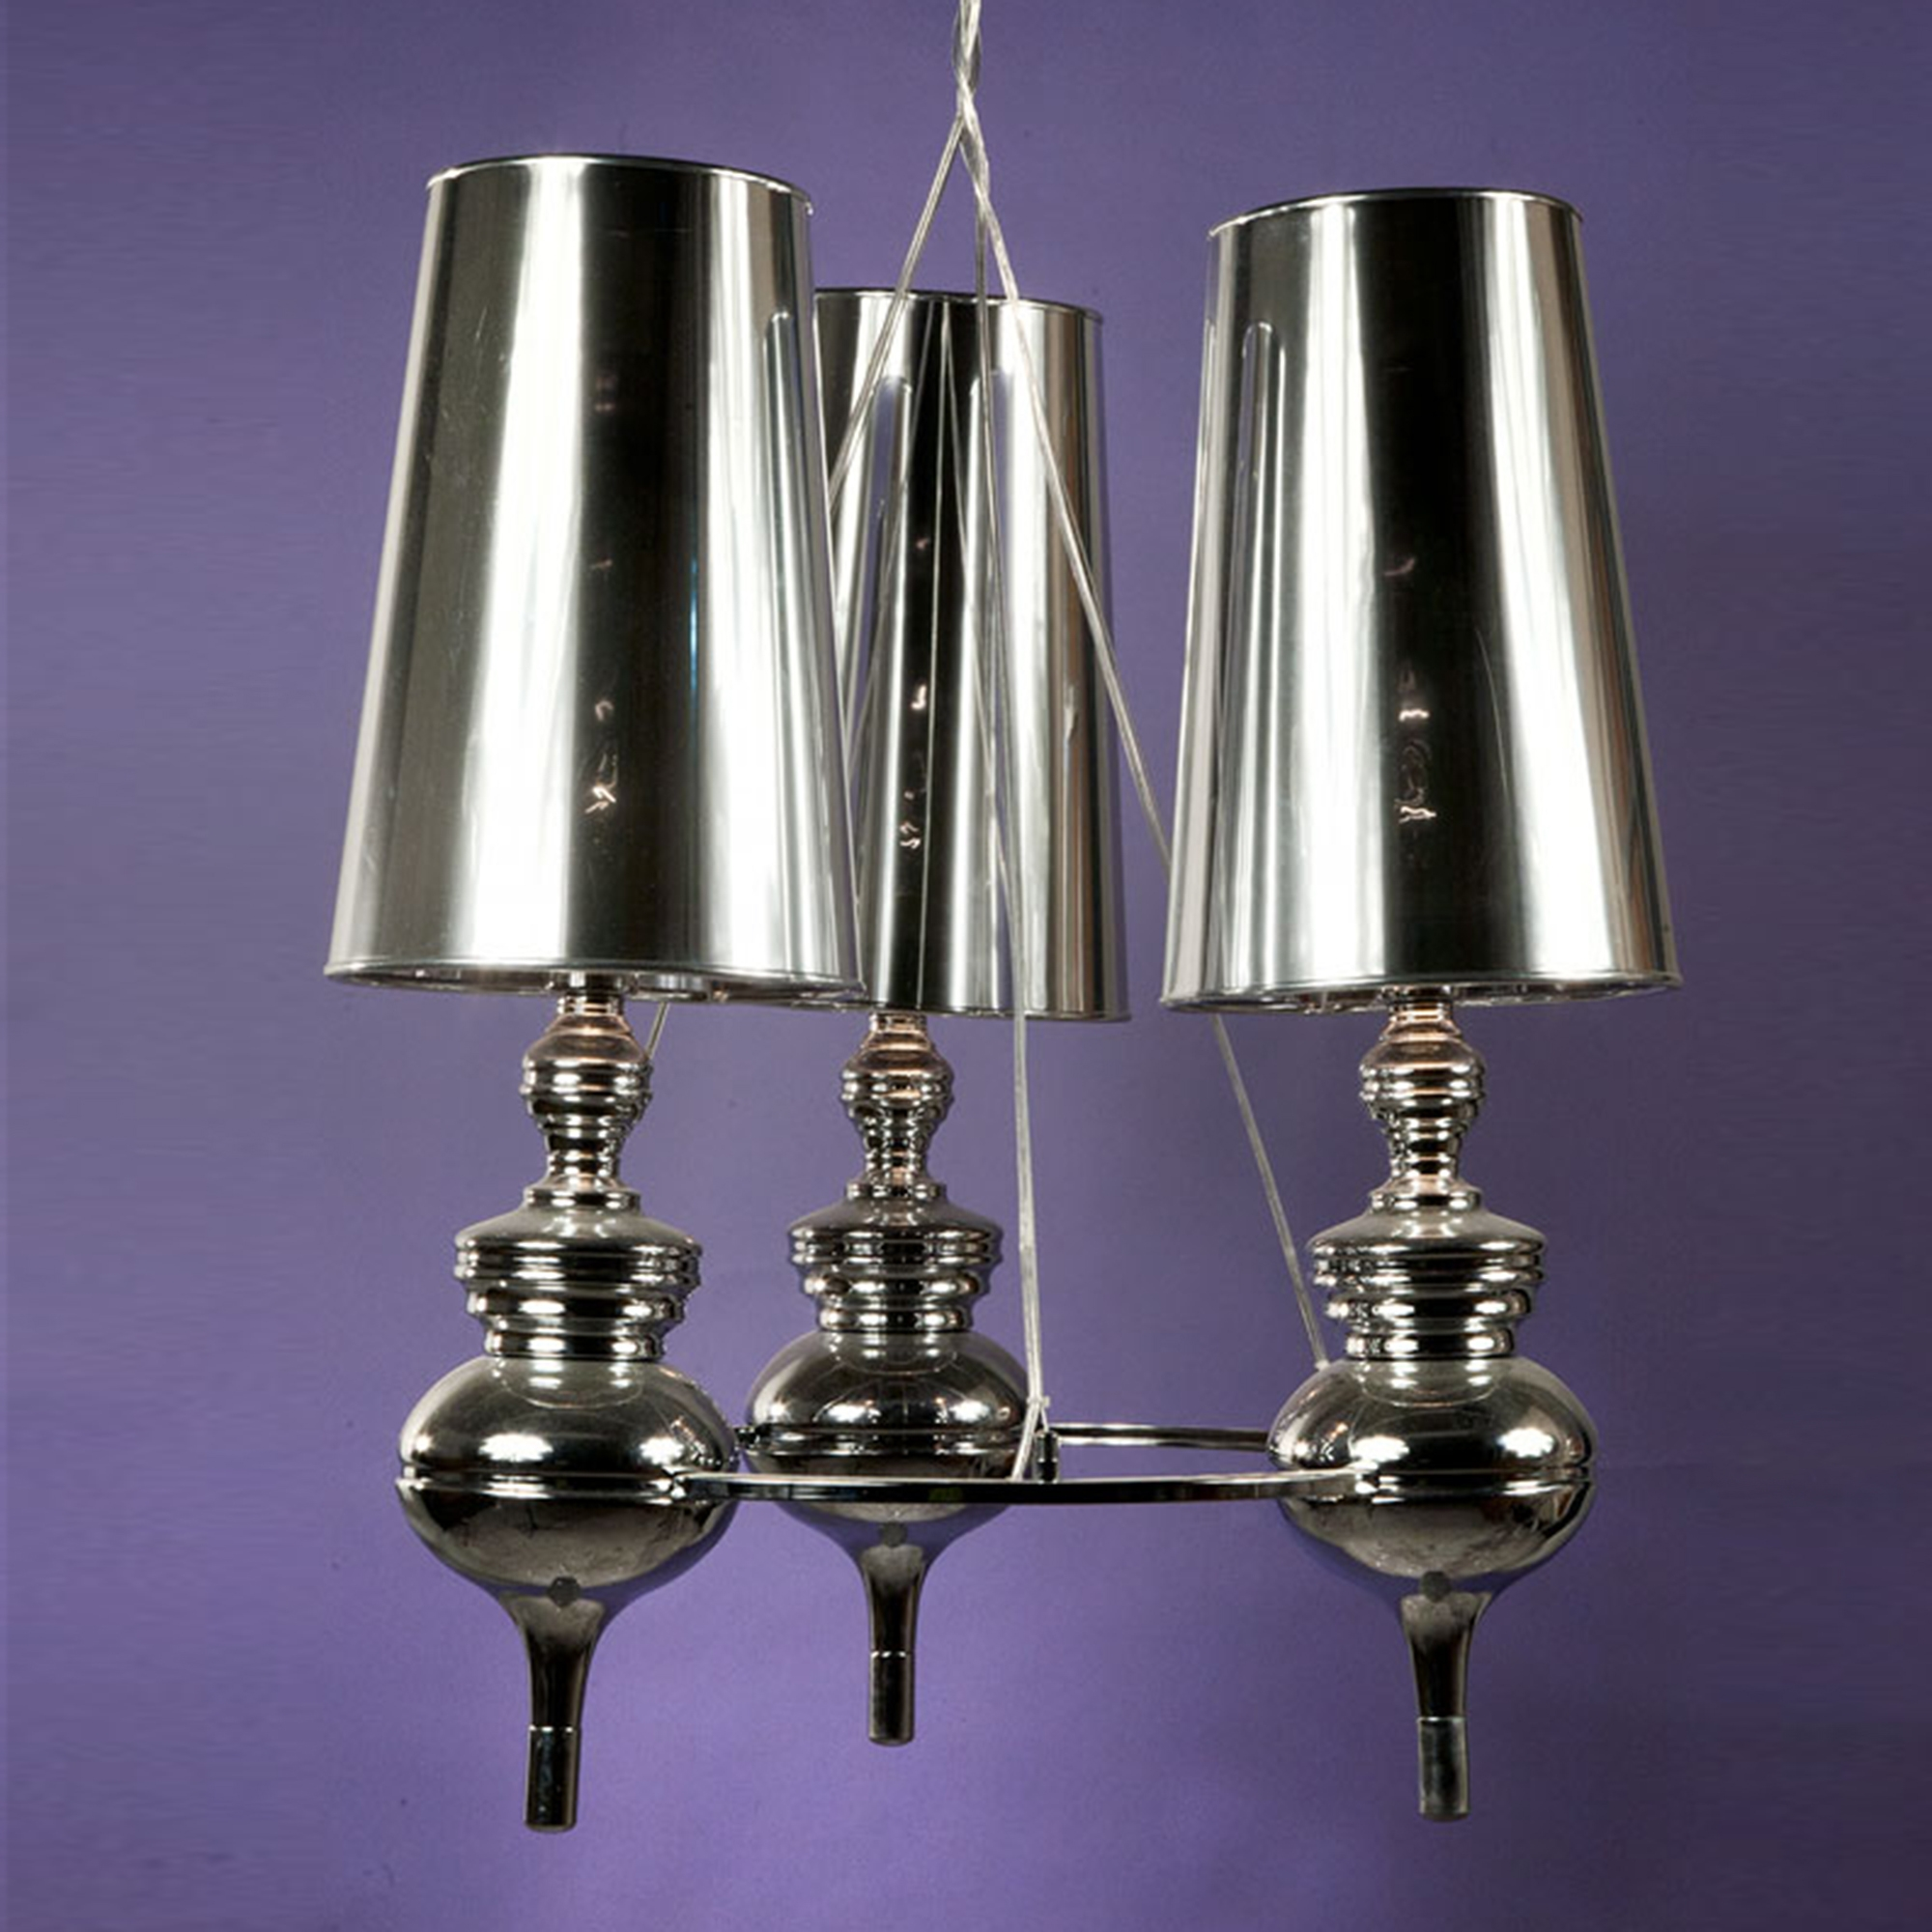 Contemporary Stylised Ceiling Light - Chrome